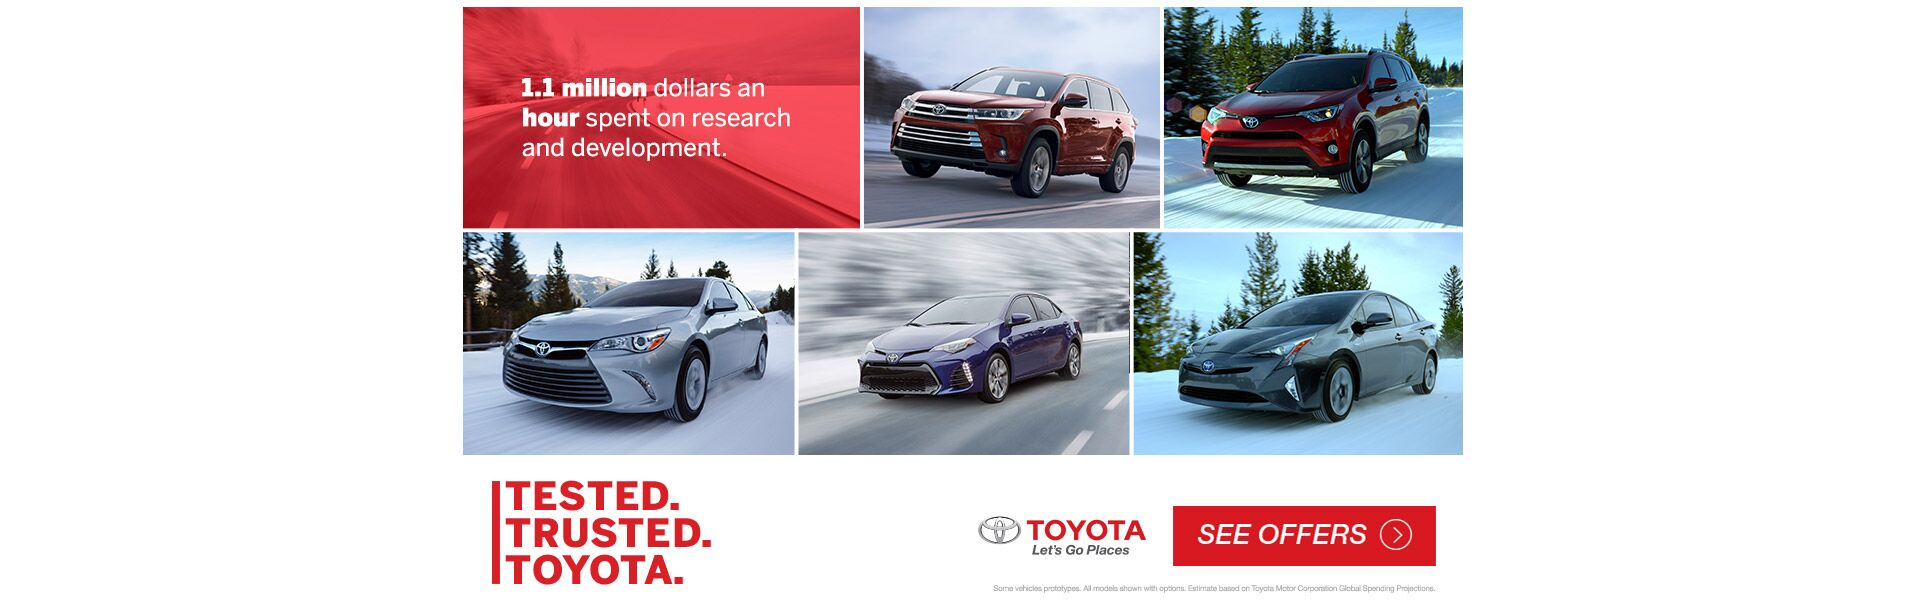 tested,trusted,toyota